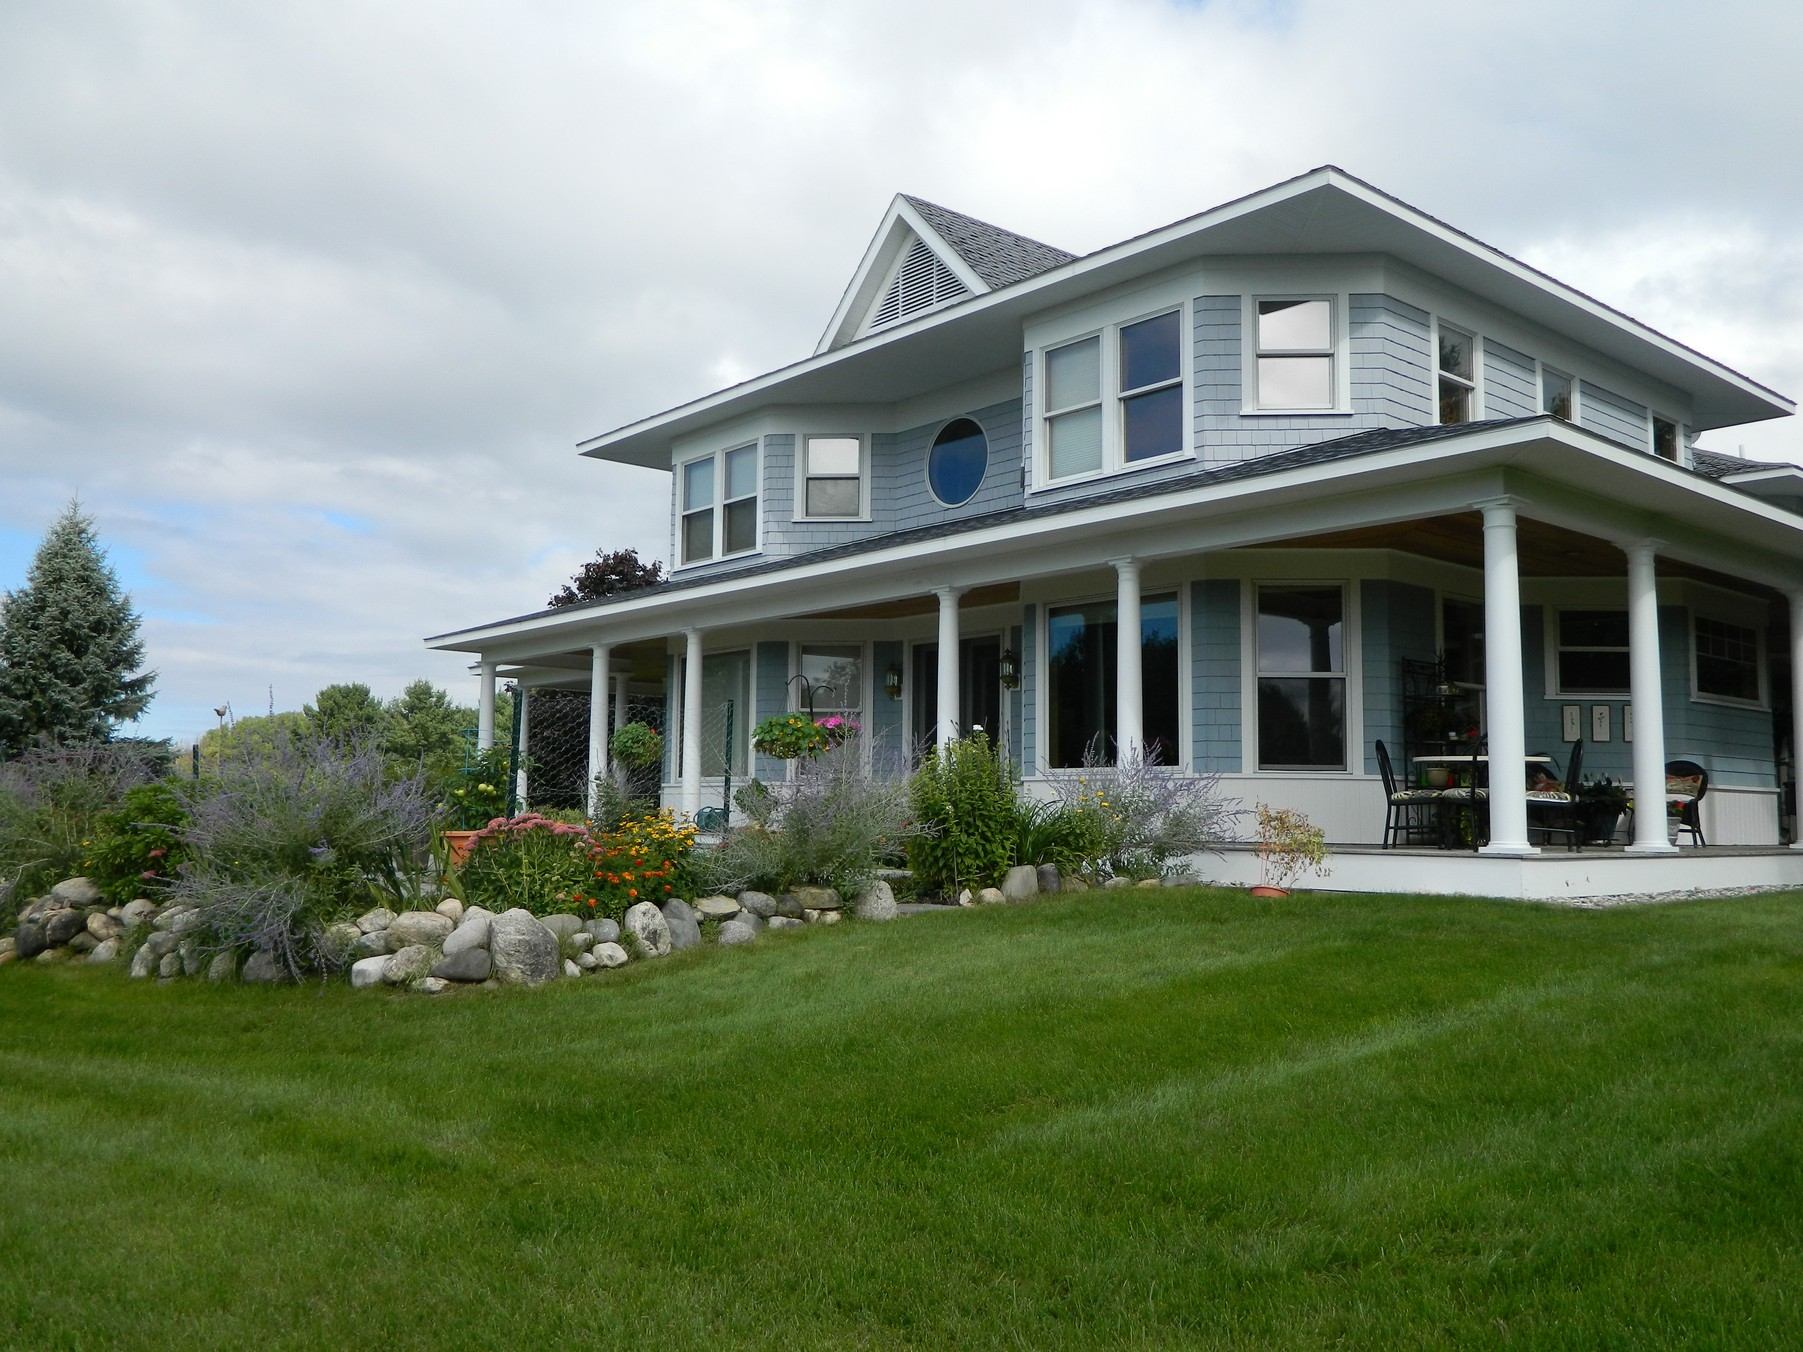 Single Family Home for Sale at 6281 S. Lake Shore Drive, Harbor Springs Harbor Springs, Michigan, 49740 United States